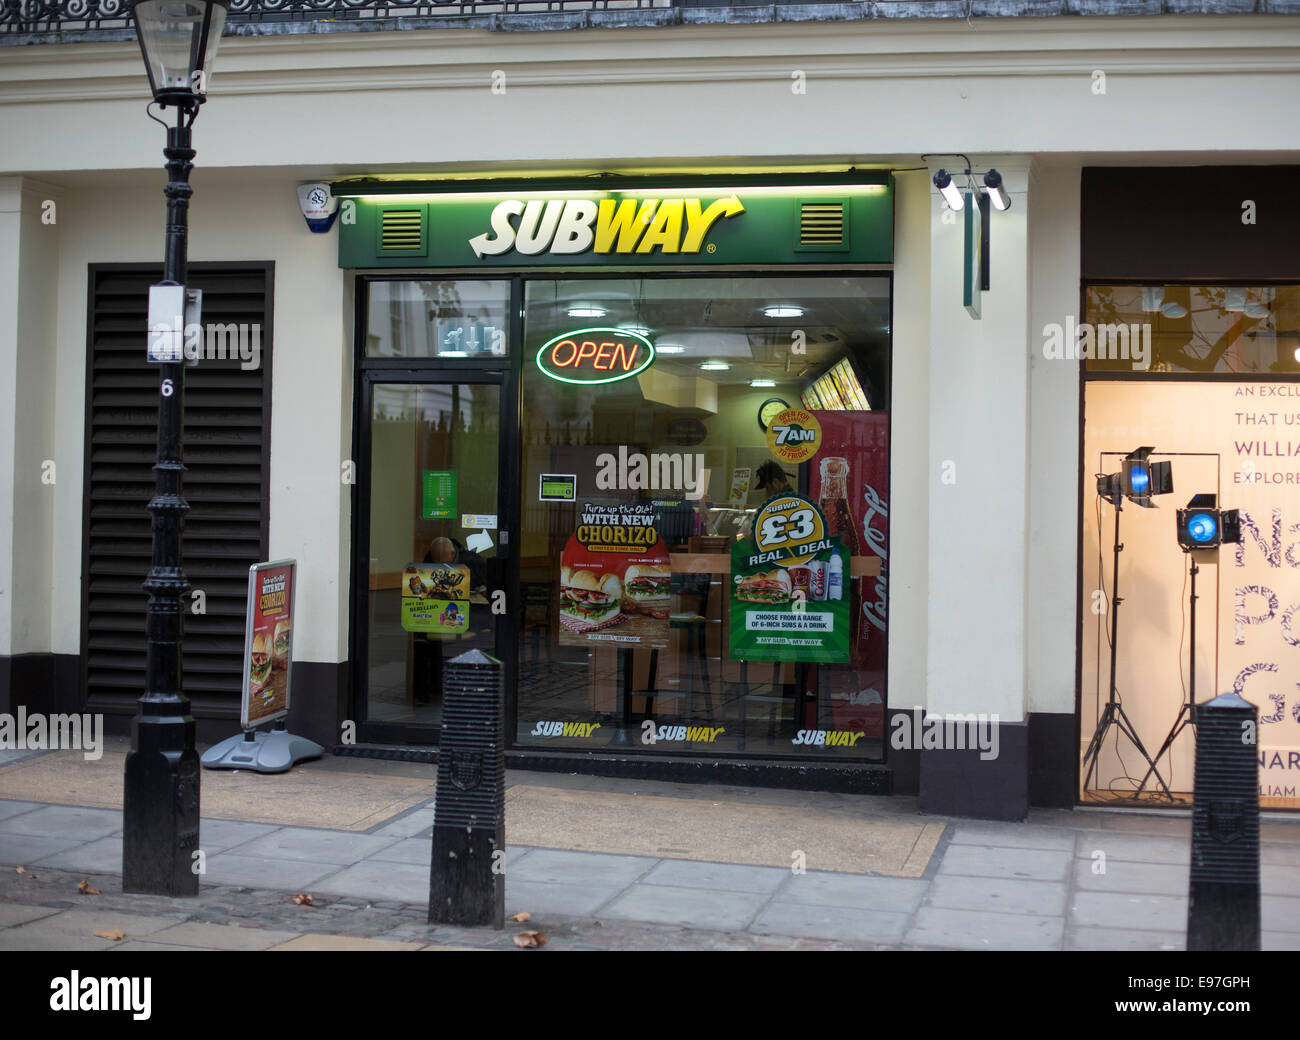 Subway fast food restaurant central London sandwich - Stock Image